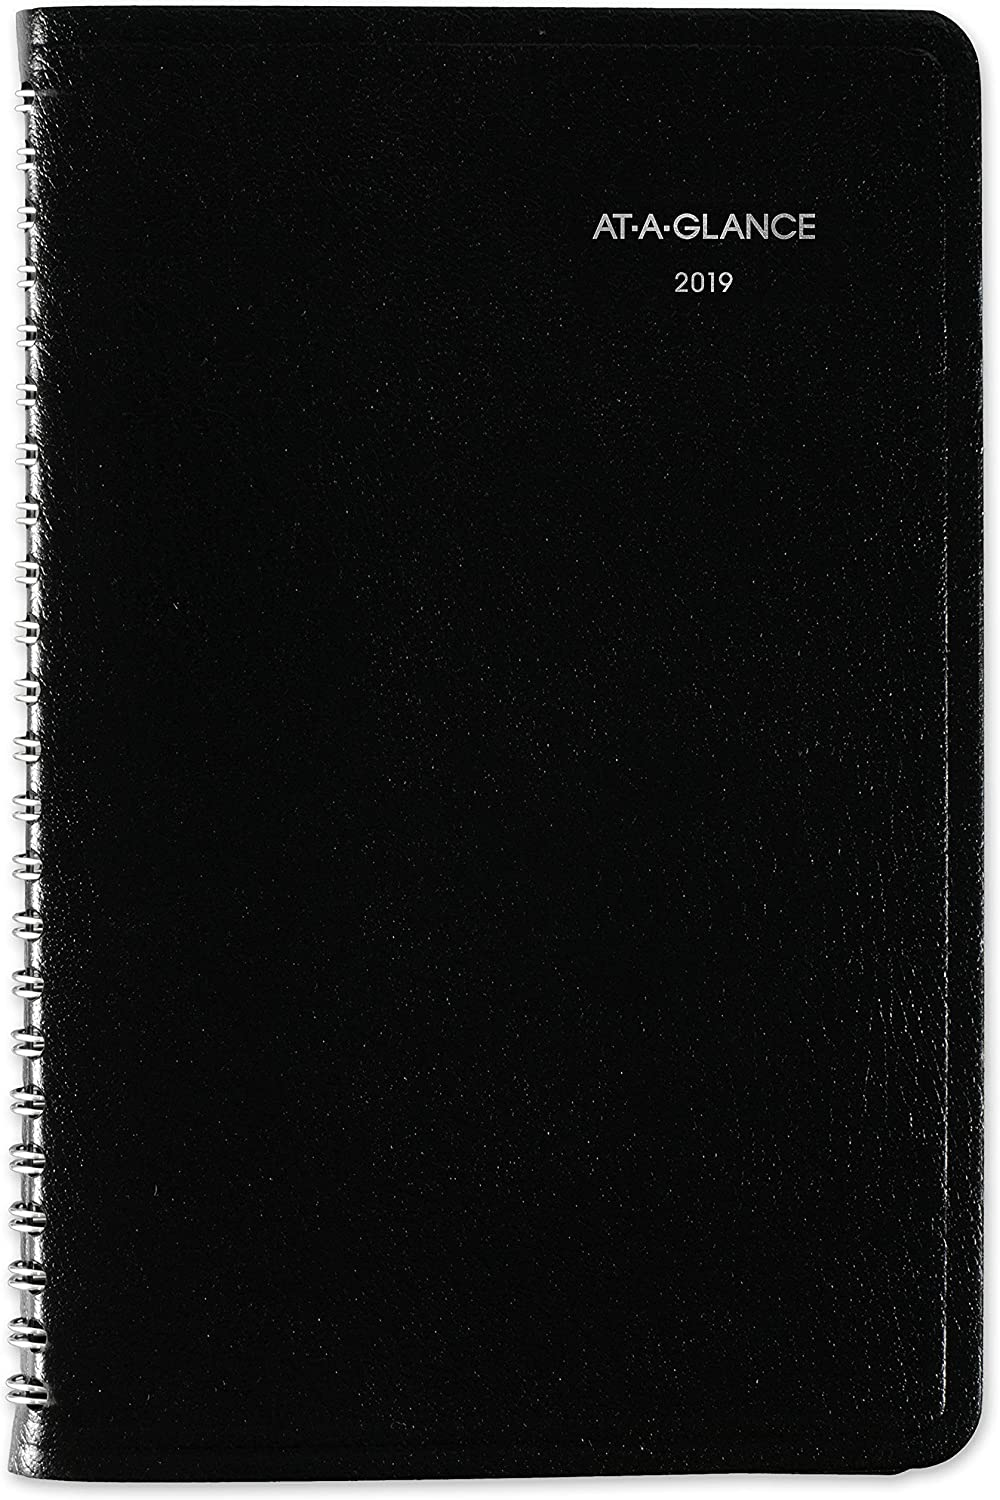 AT-A-GLANCE 2020 Weekly Planner//Appointment Book G20000 DayMinder Small 5-1//2 x 8-1//2 Black